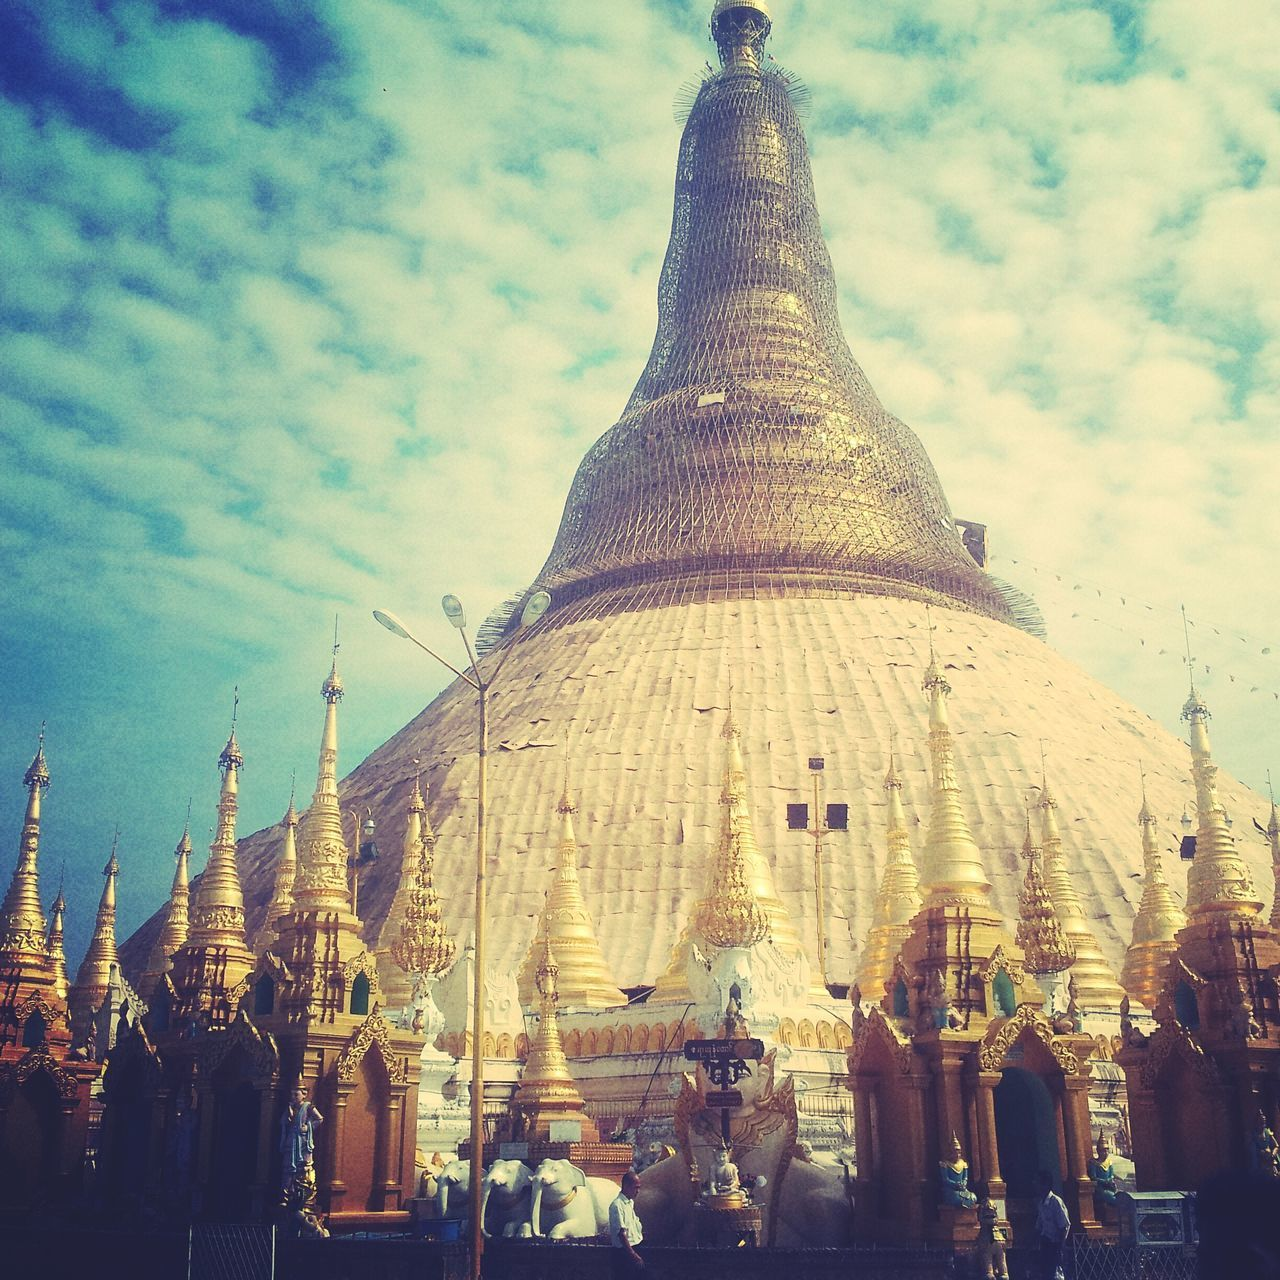 Sky Cloud Temple - Building Religion And Tradition Church. Yangoon Burma Shwedagon Pagode Human Representation